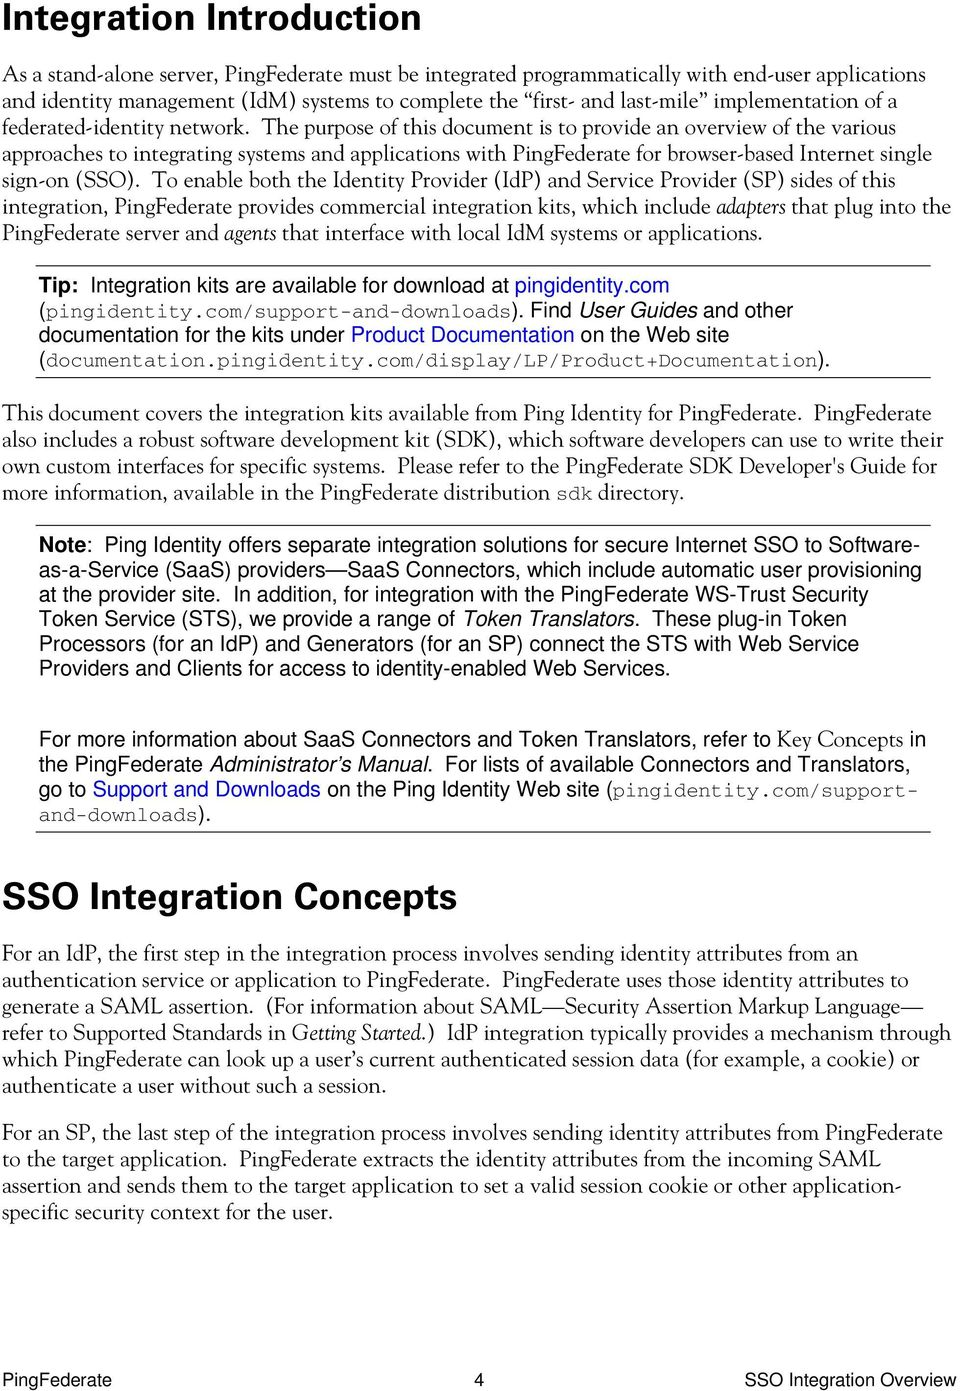 PingFederate  SSO Integration Overview - PDF